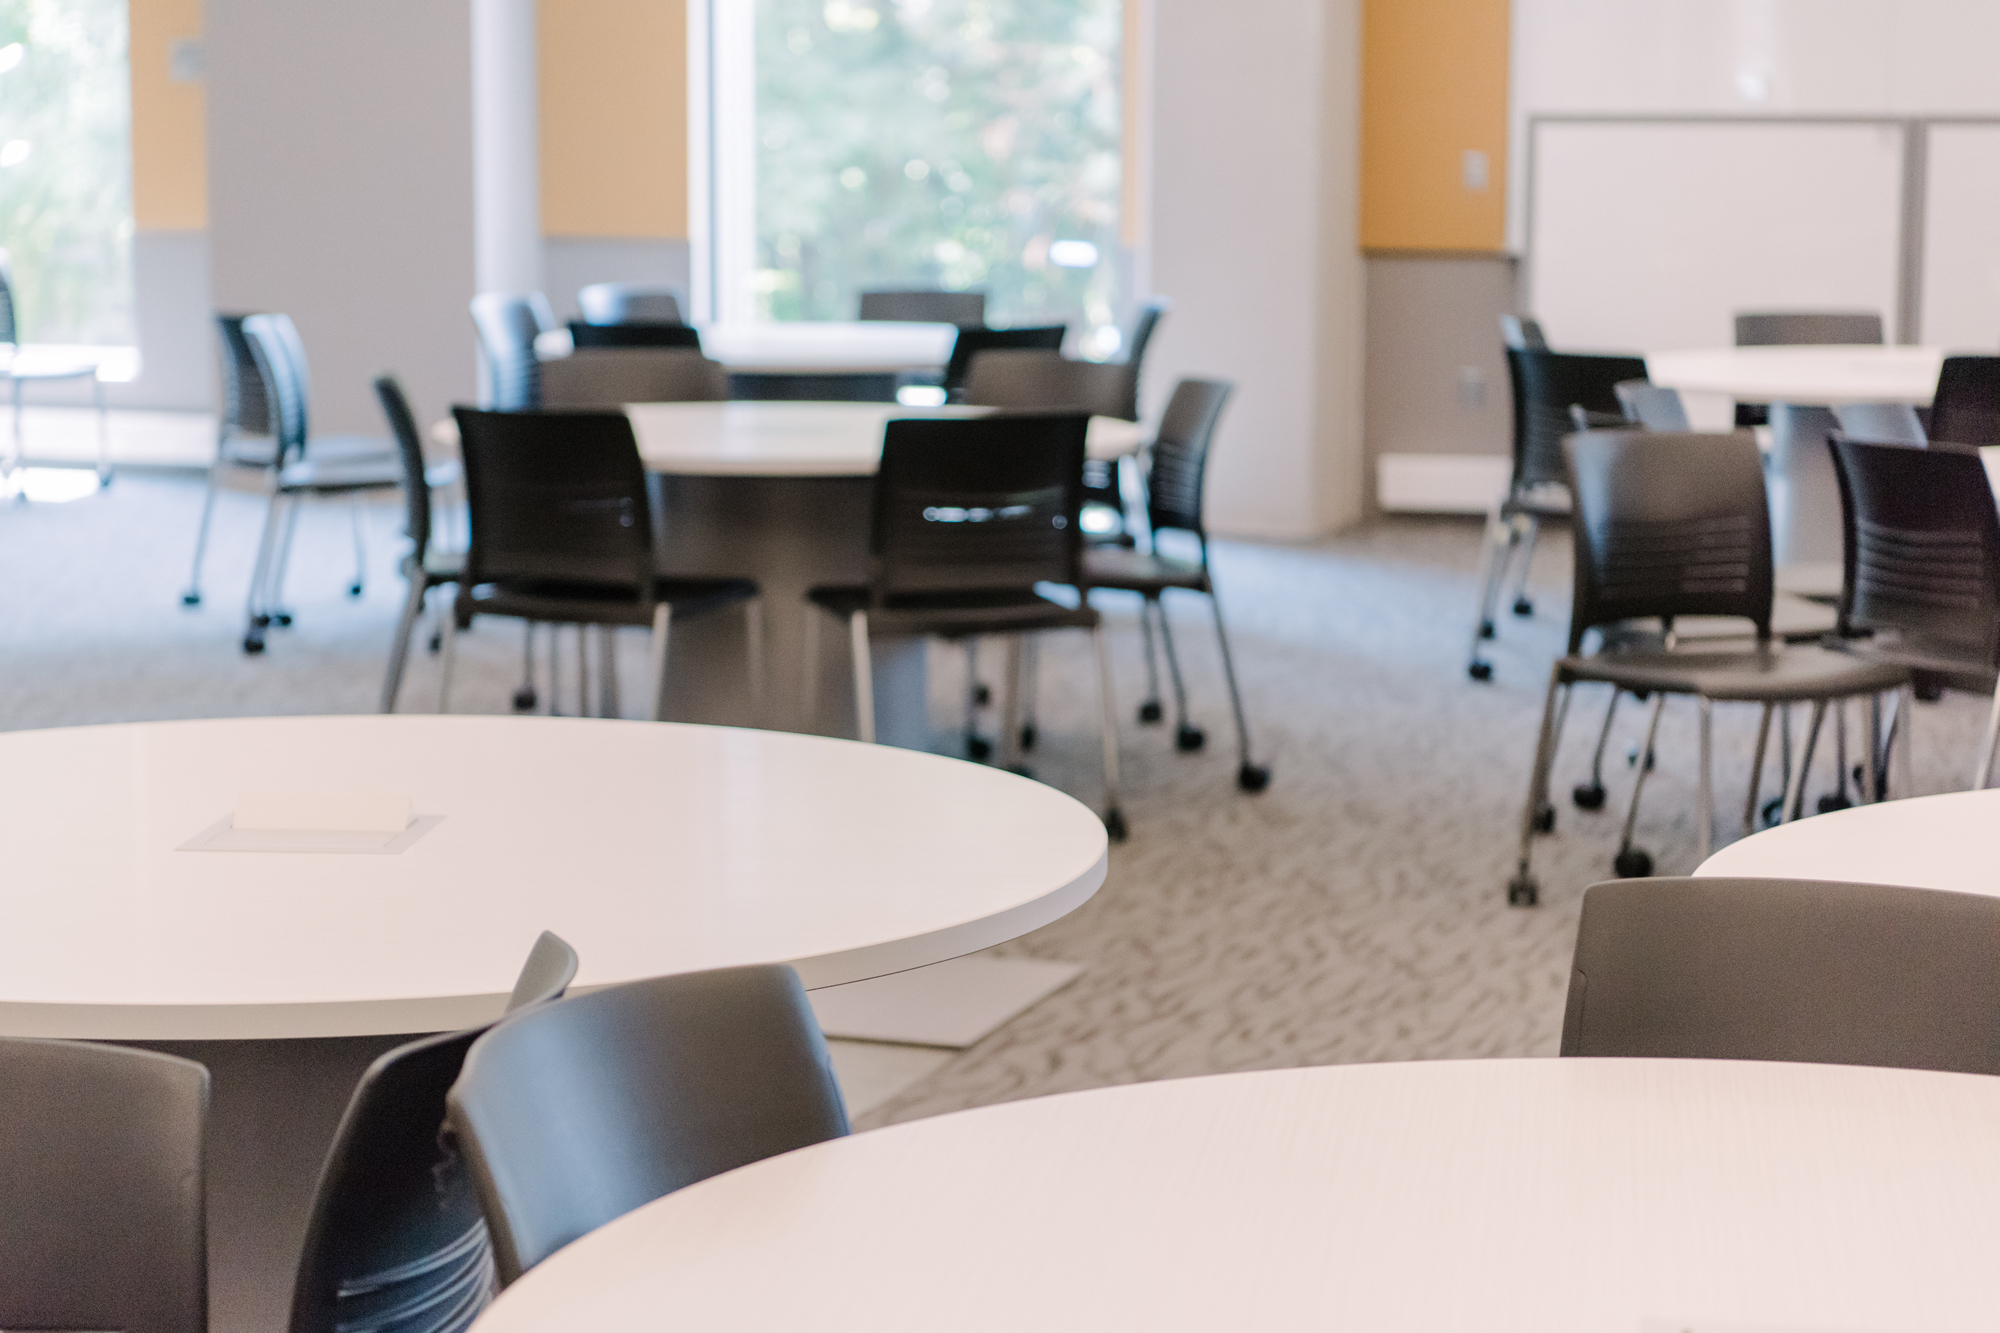 chairs circling tables in ILSB